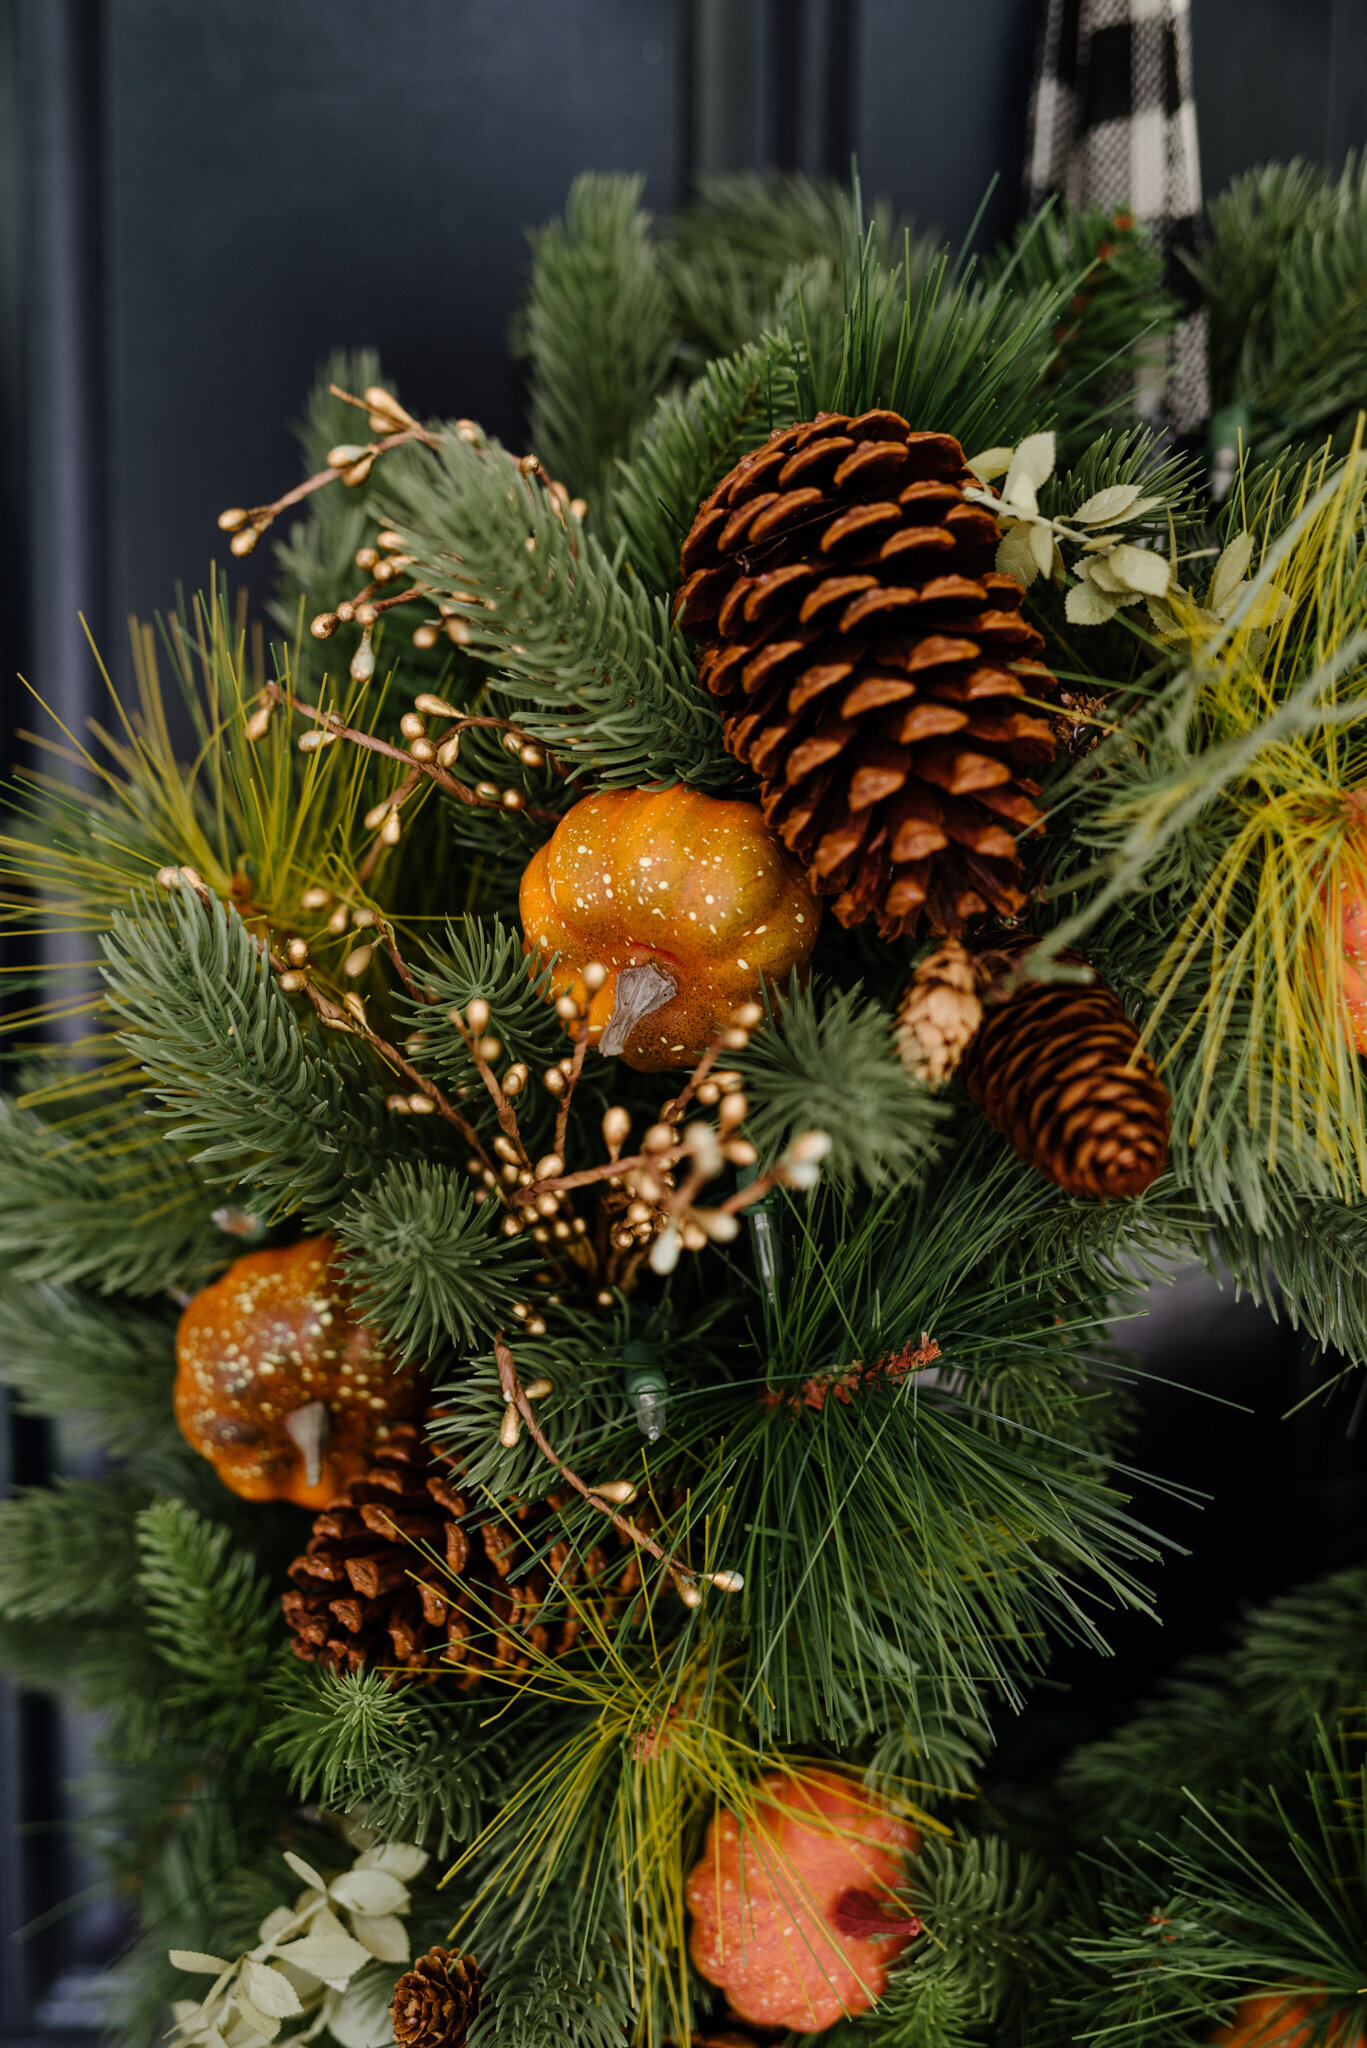 Tree Classics  Classic Fraser Fir Festive Wreath . The wreath comes decorated with tiny gold buds, faux leaves, pinecones and real feel needles. I added the faux pumpkins for a bit of a fall touch.